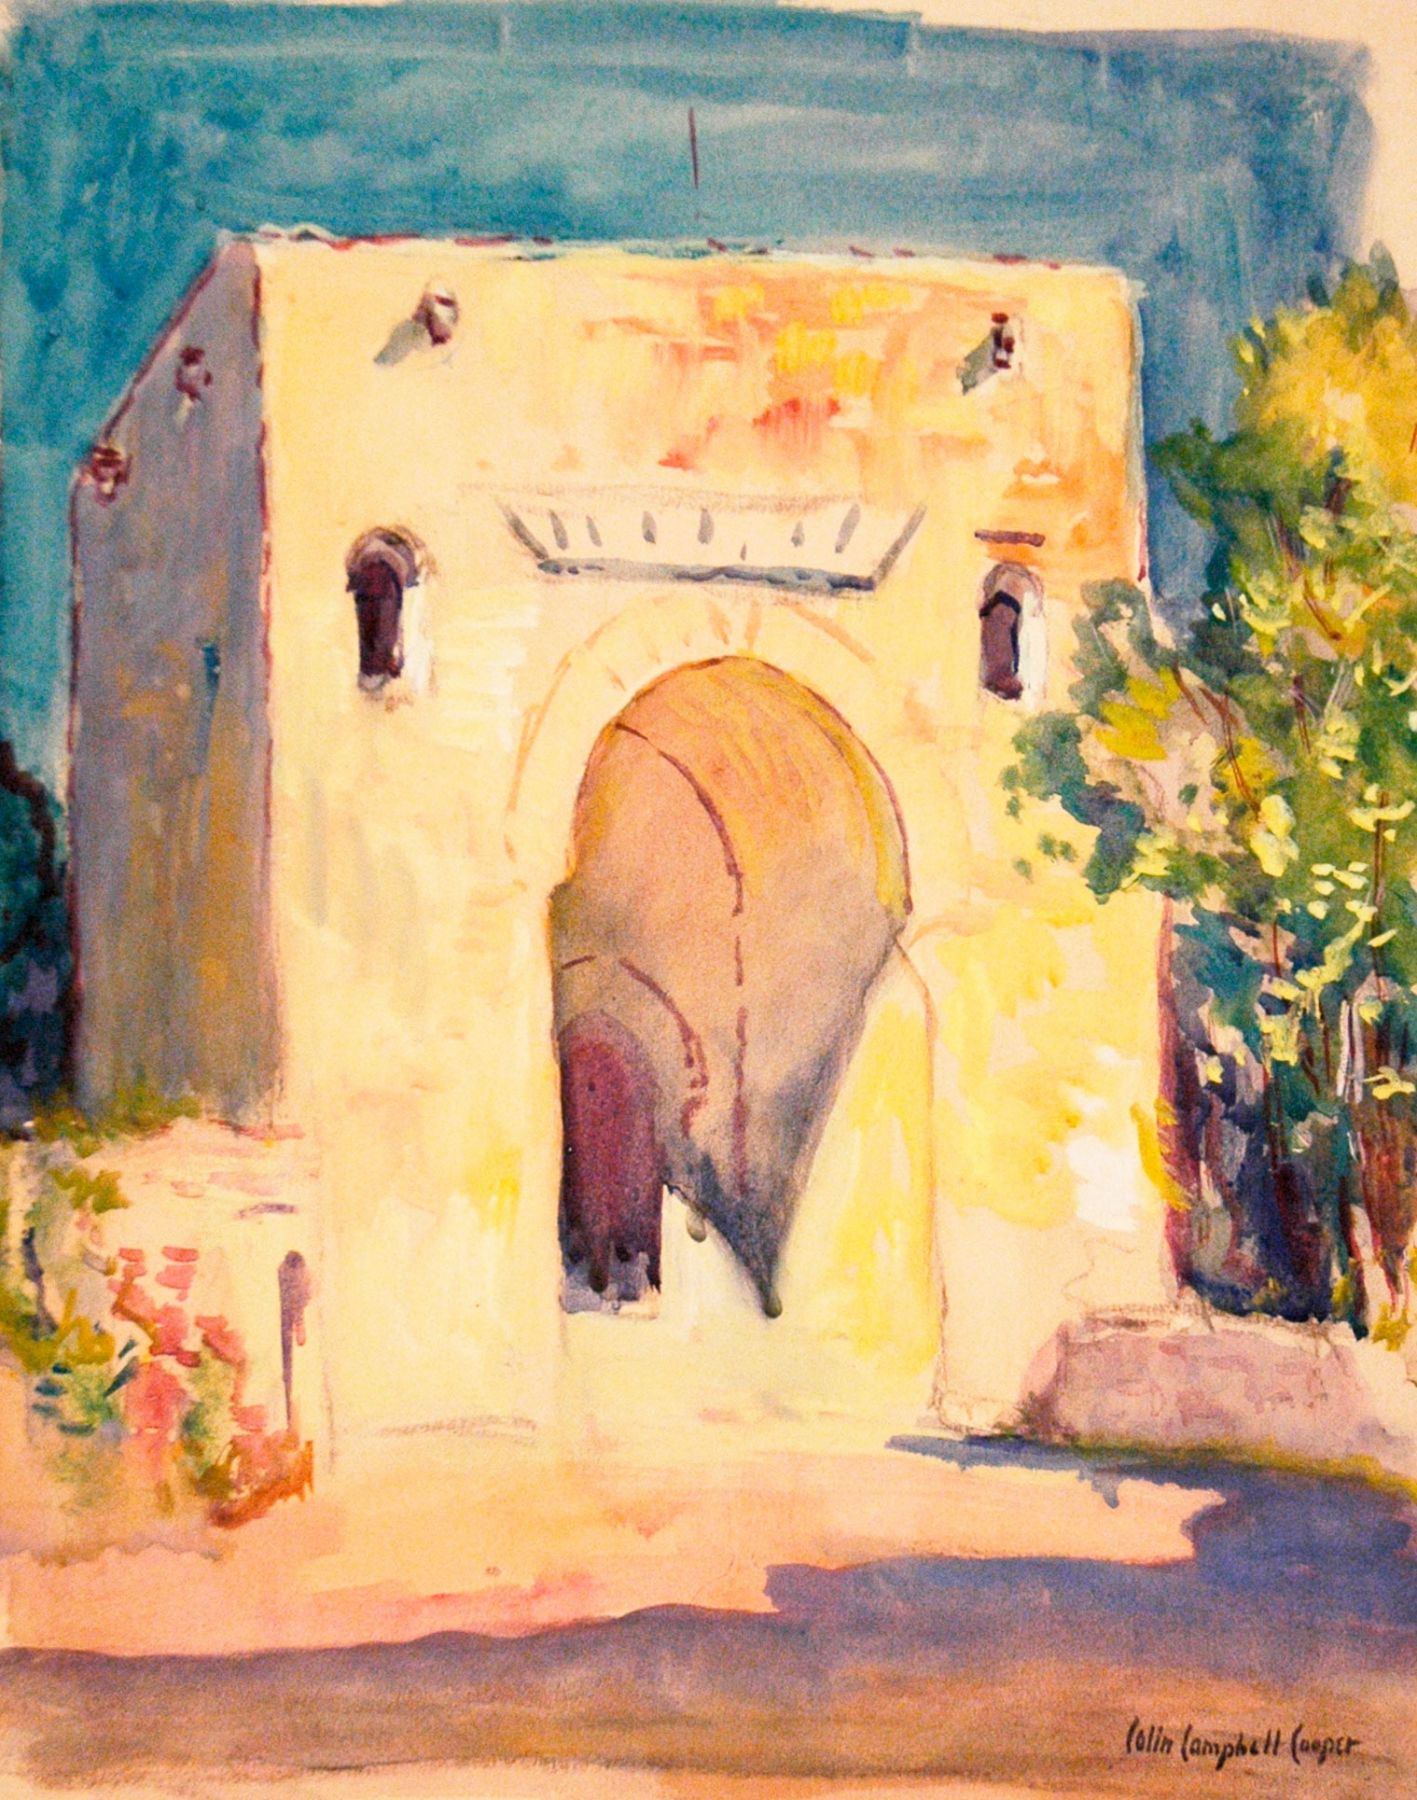 COLIN CAMPBELL COOPER (1856-1937), Study of The Gate of Justice, c. 1925